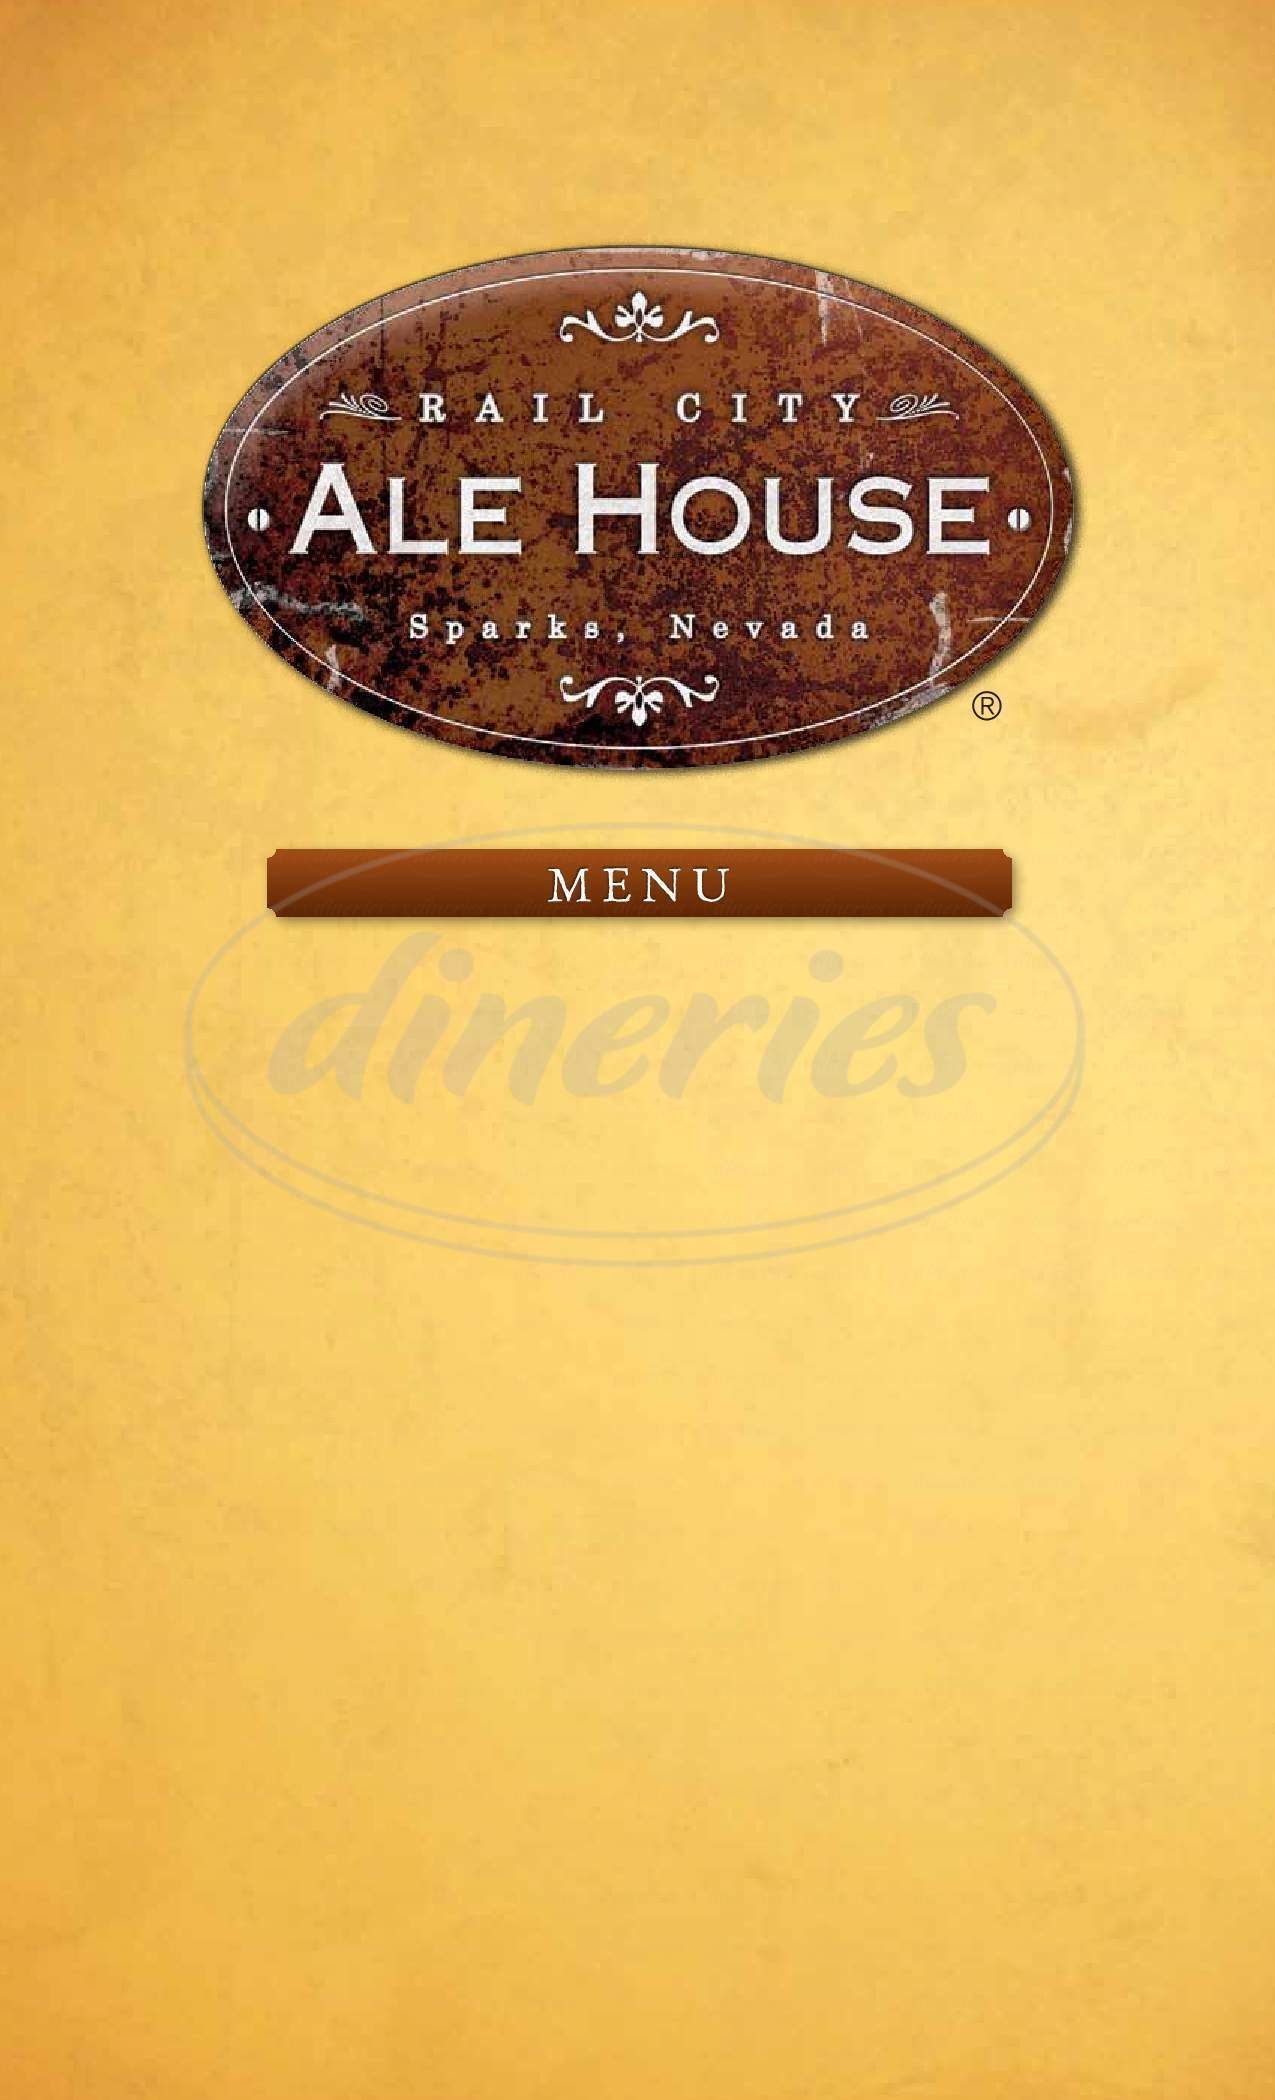 menu for Rail City's Ale House